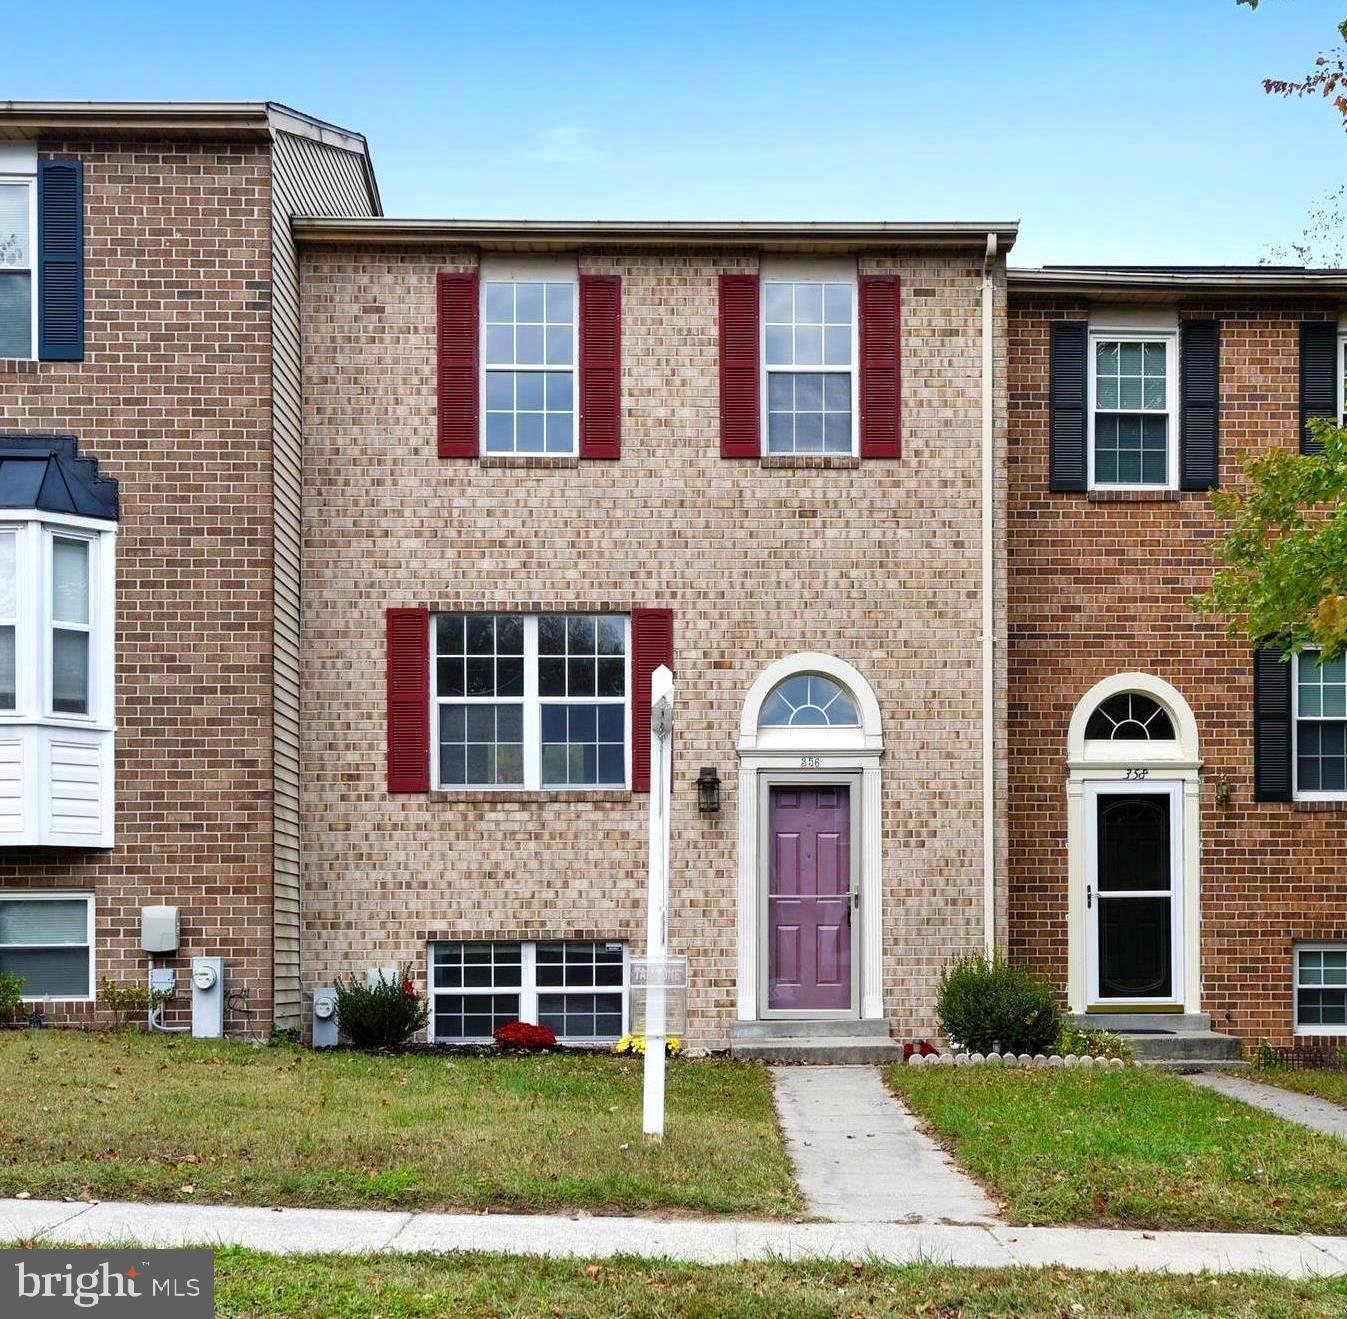 Beautiful UpdatedTownhouse in Aspen Park with Spacious light filled Living Room, Eat- in Kitchen, New Appliances and countertops, updated baths, Finished Walk-out Lower level with 4th Bedroom and Full Bath, Large Deck & Fenced Yard.